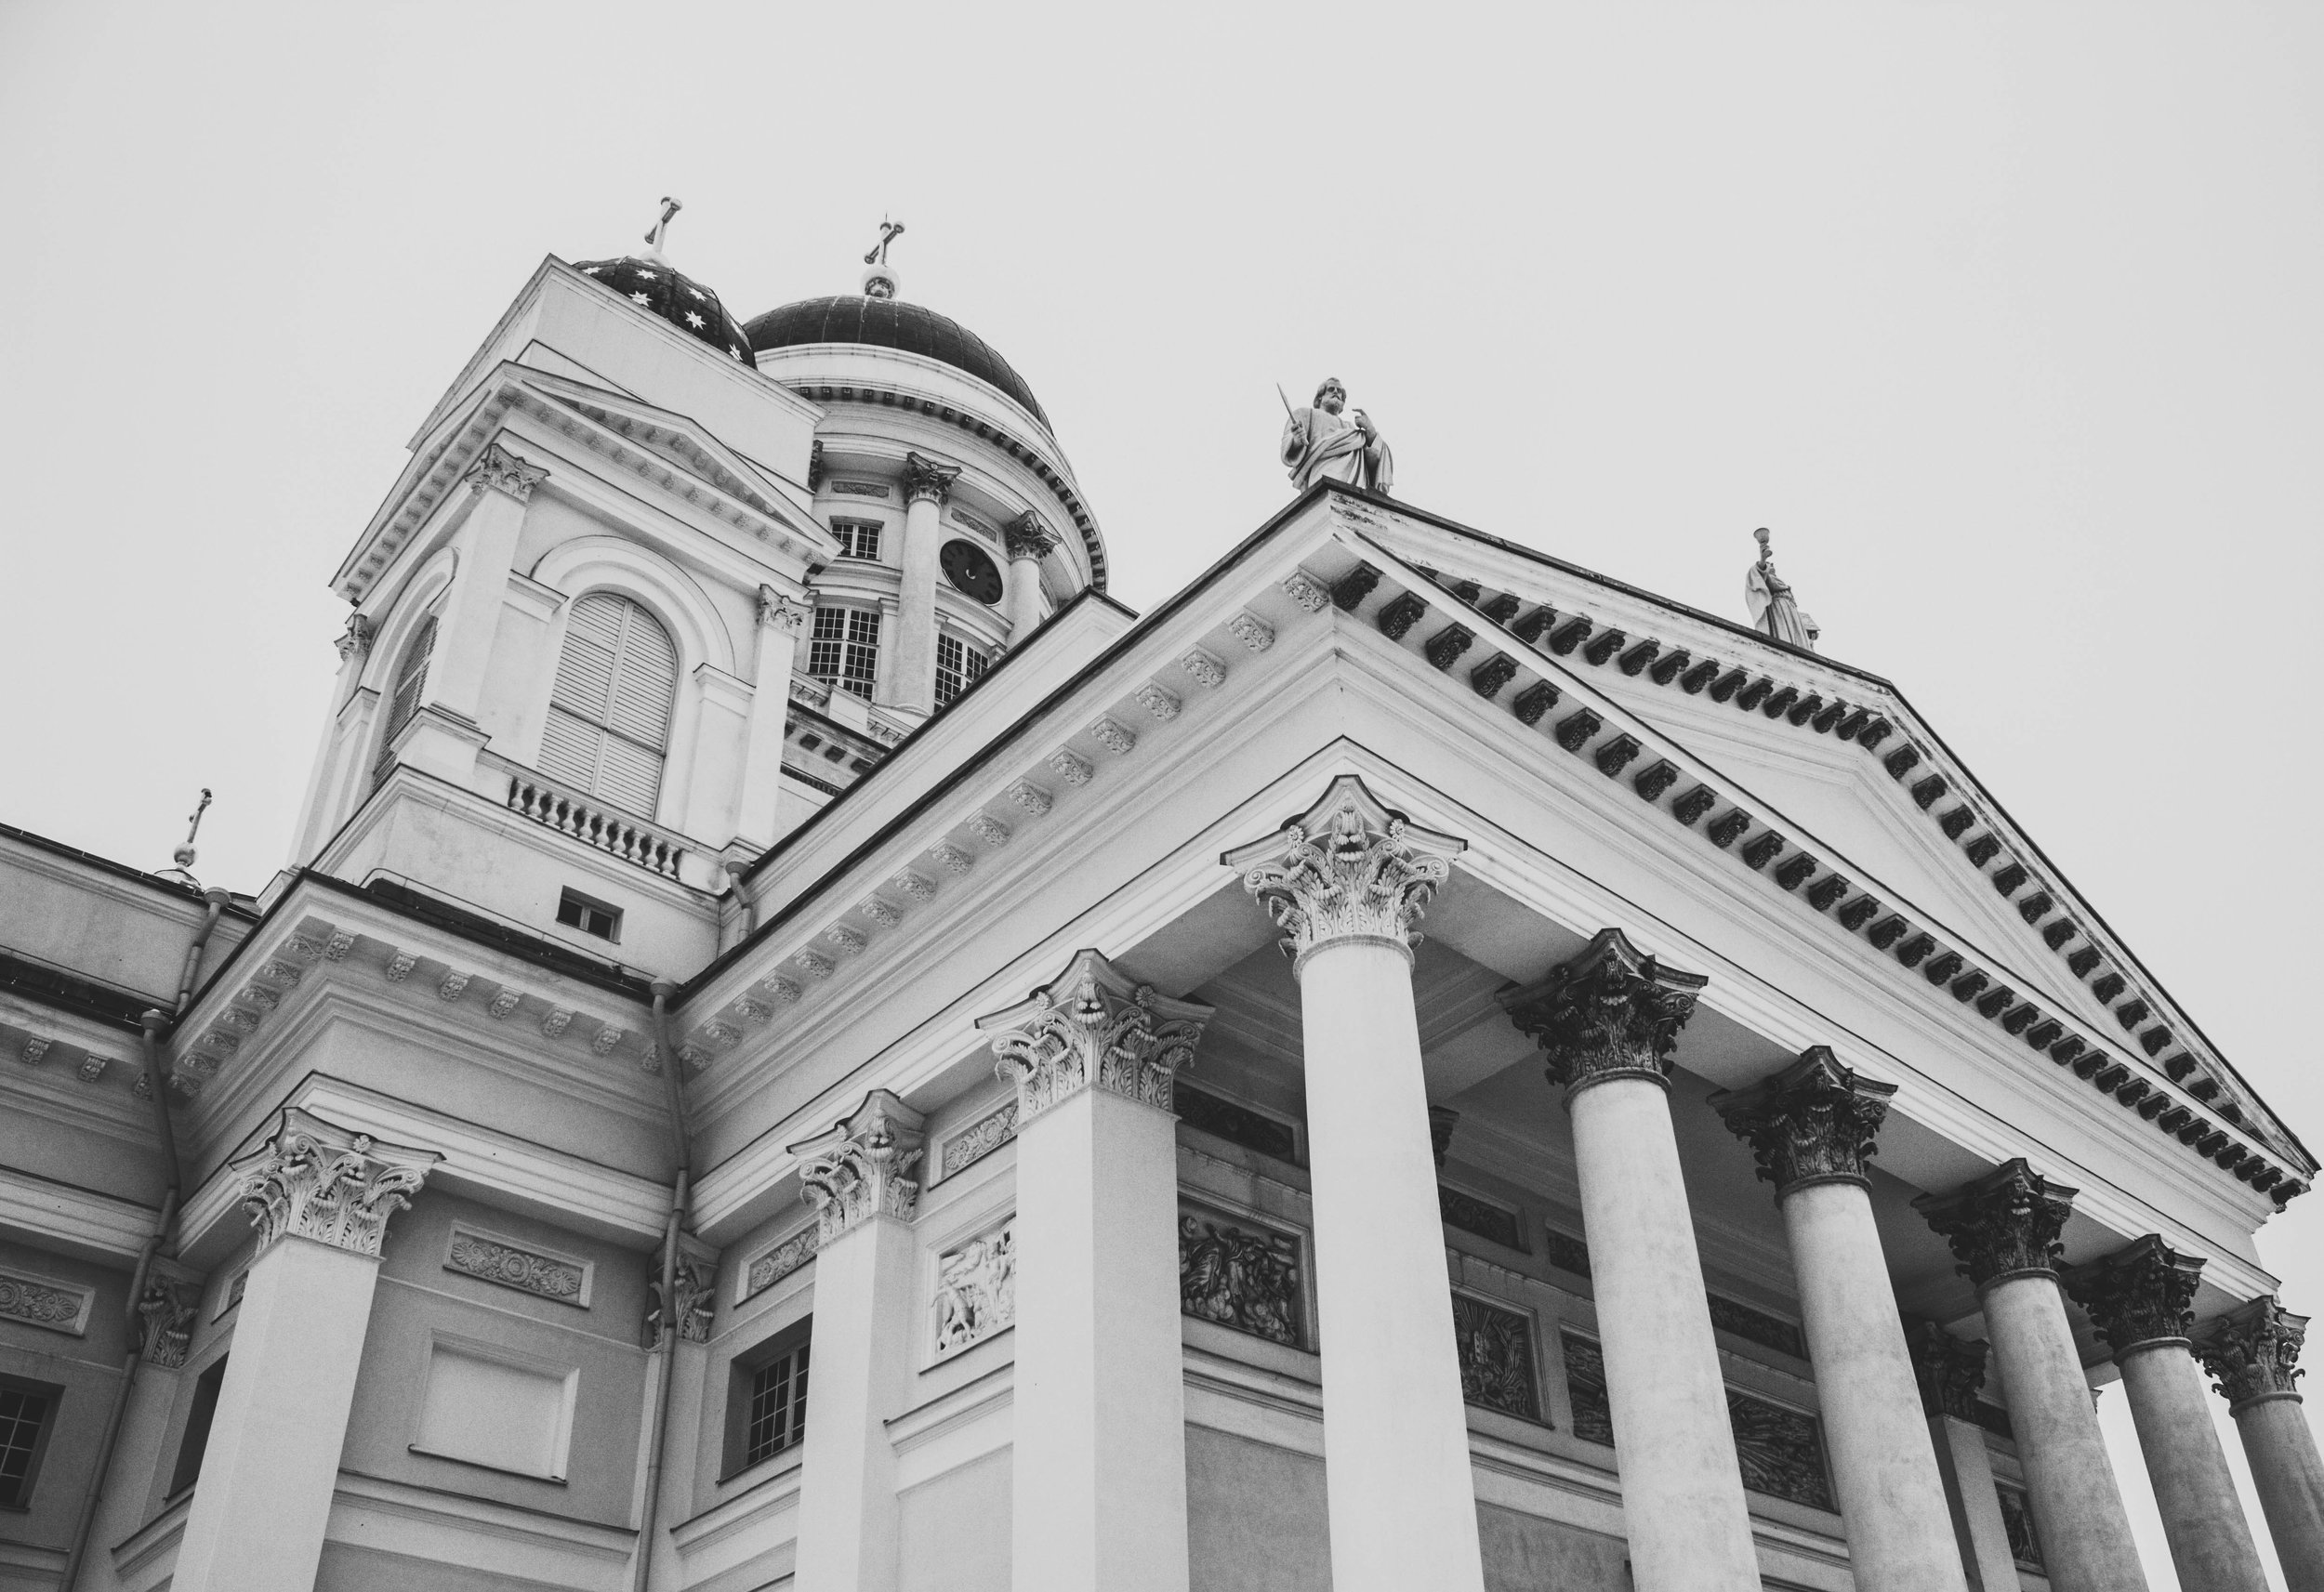 Courthouse_architecture-black-and-white-black-and-white-814795.jpg